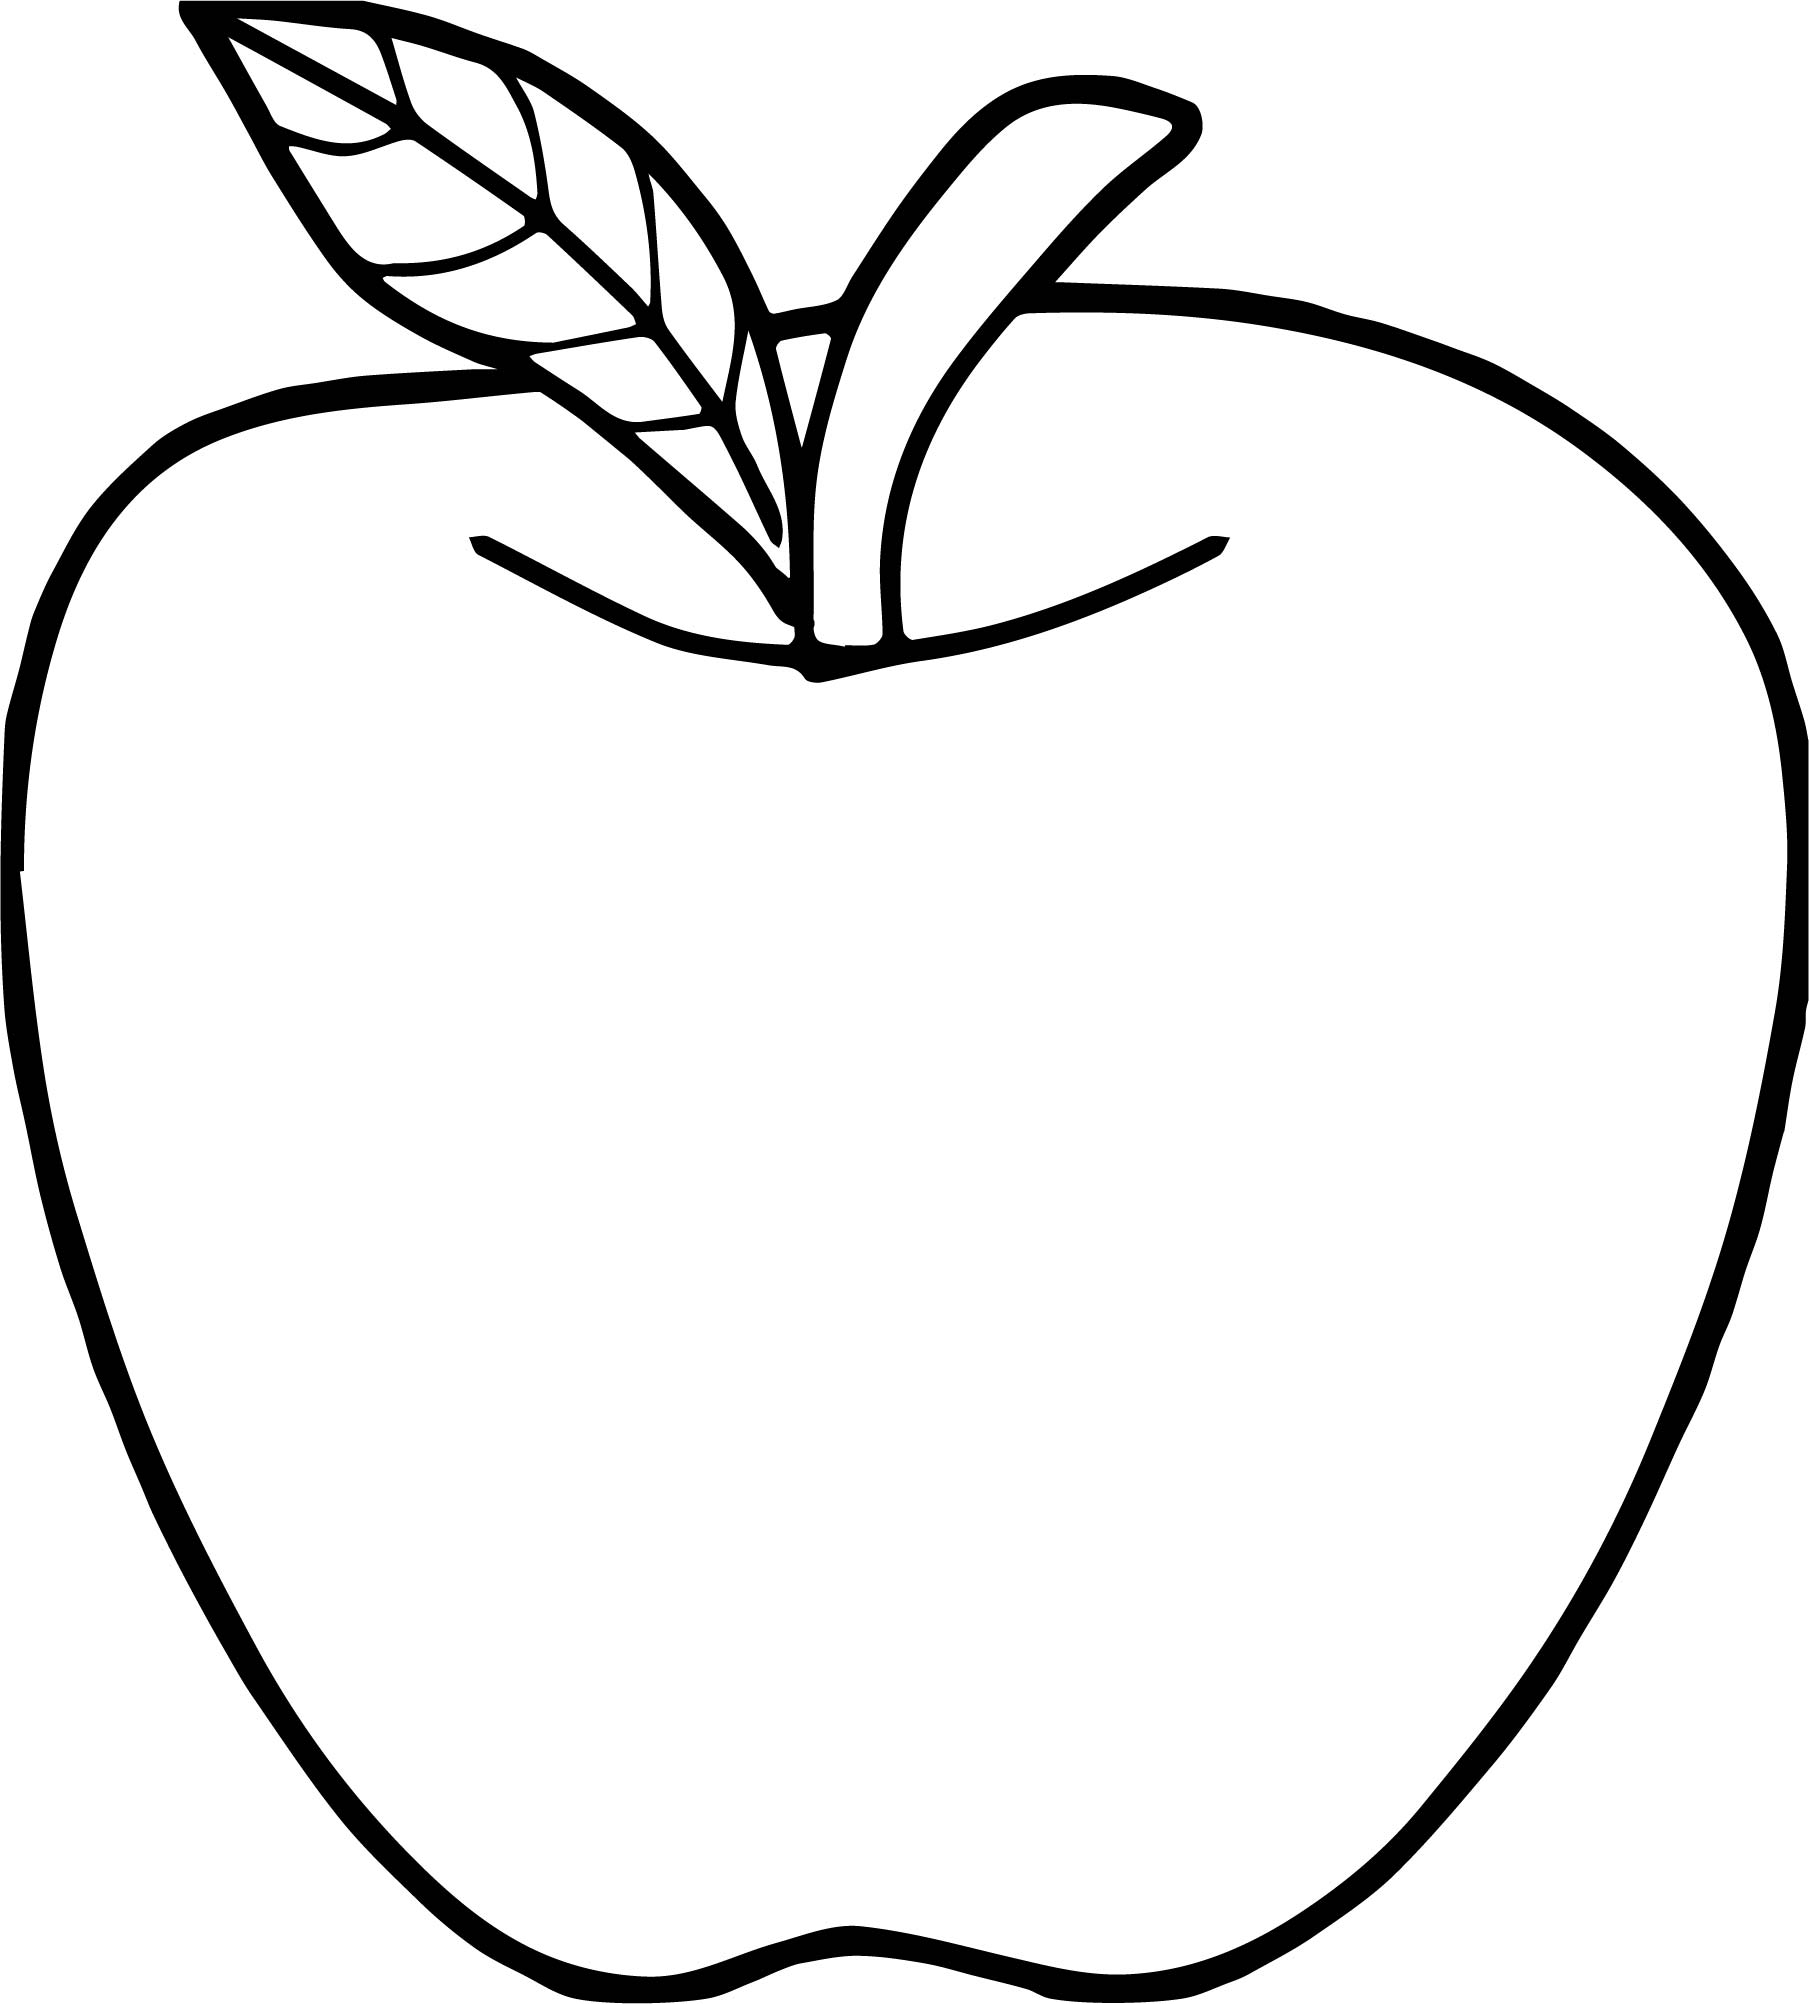 pictures of apples to color coloring pages for kids apple coloring pages for kids to pictures apples color of